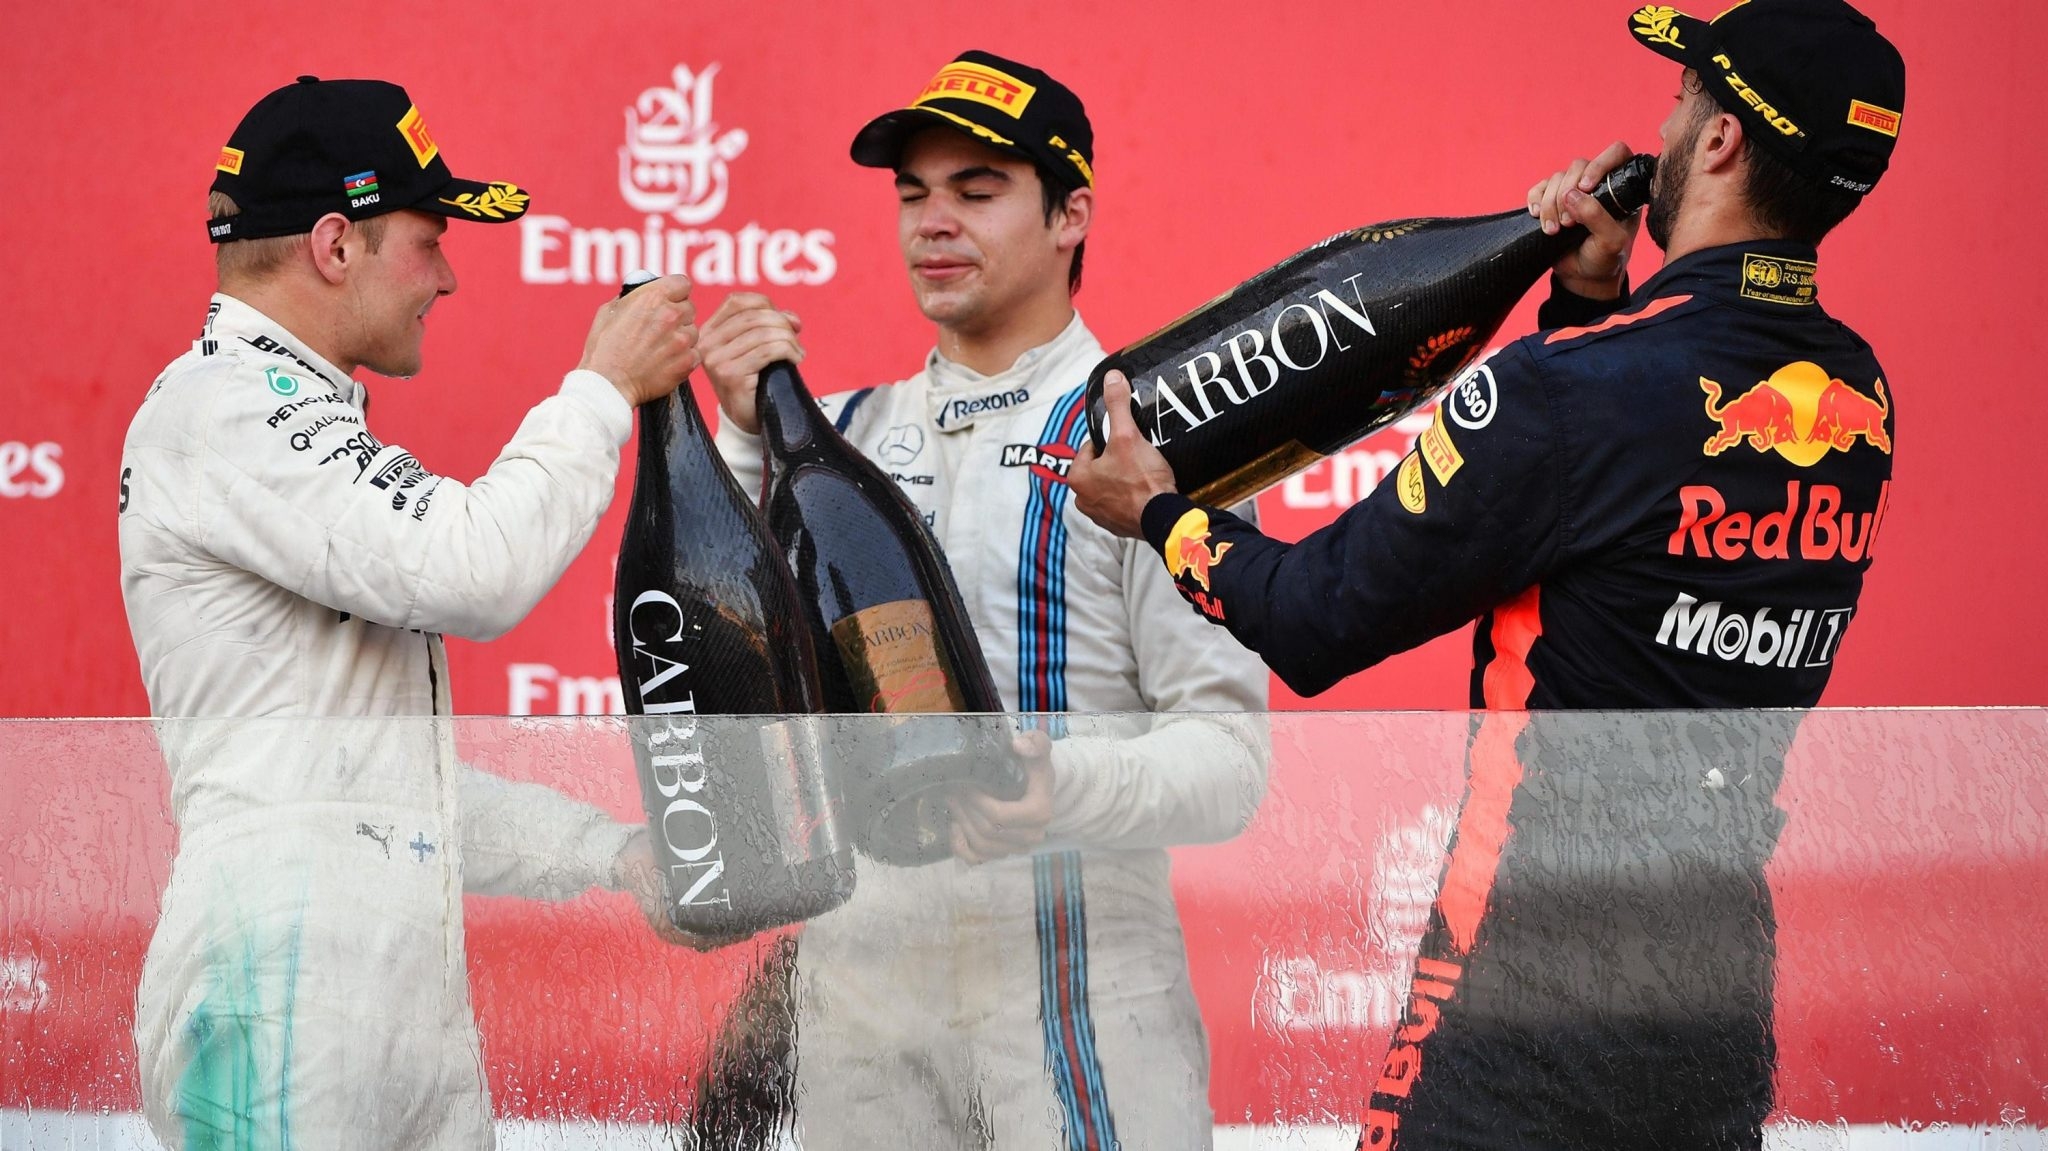 The Baku GP podium (From L to R): Bottas, Stroll, and Ricciardo